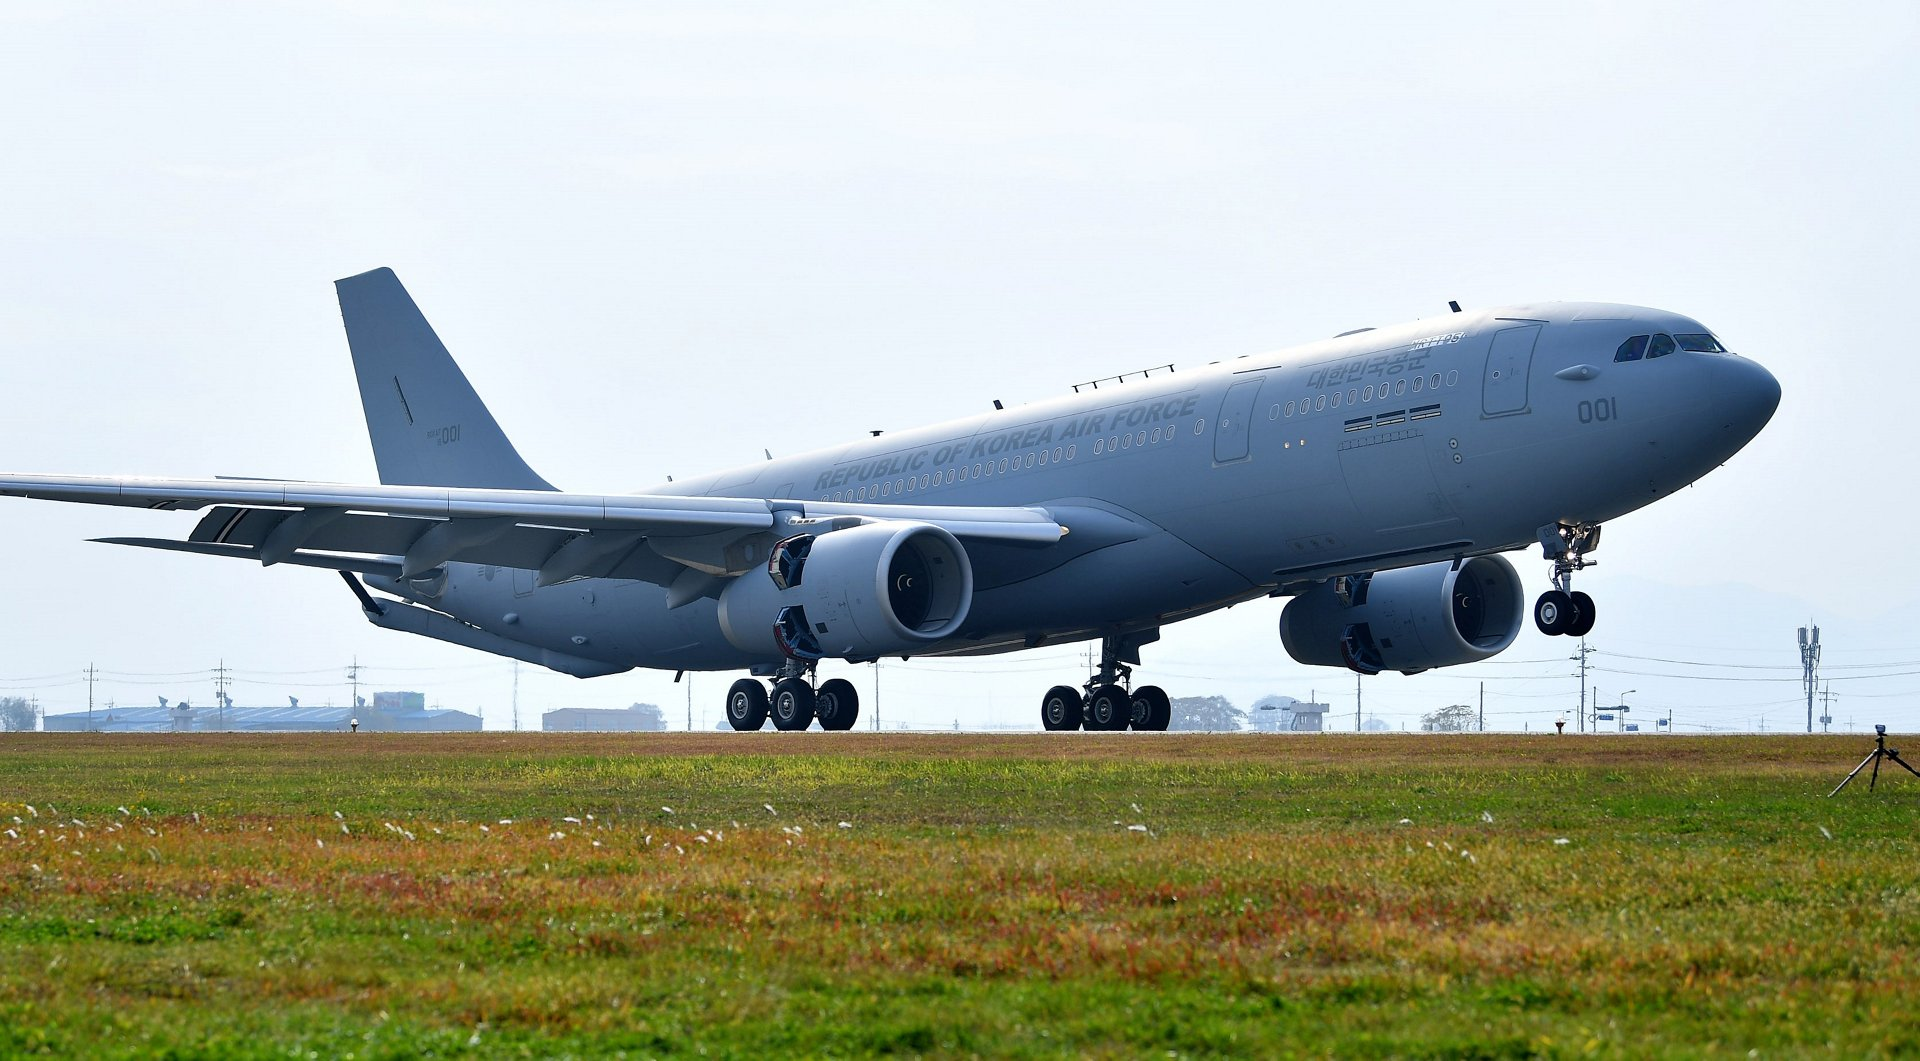 Republic of Korea Air Force receives first Airbus A330 MRTT at Gimhae Air Base